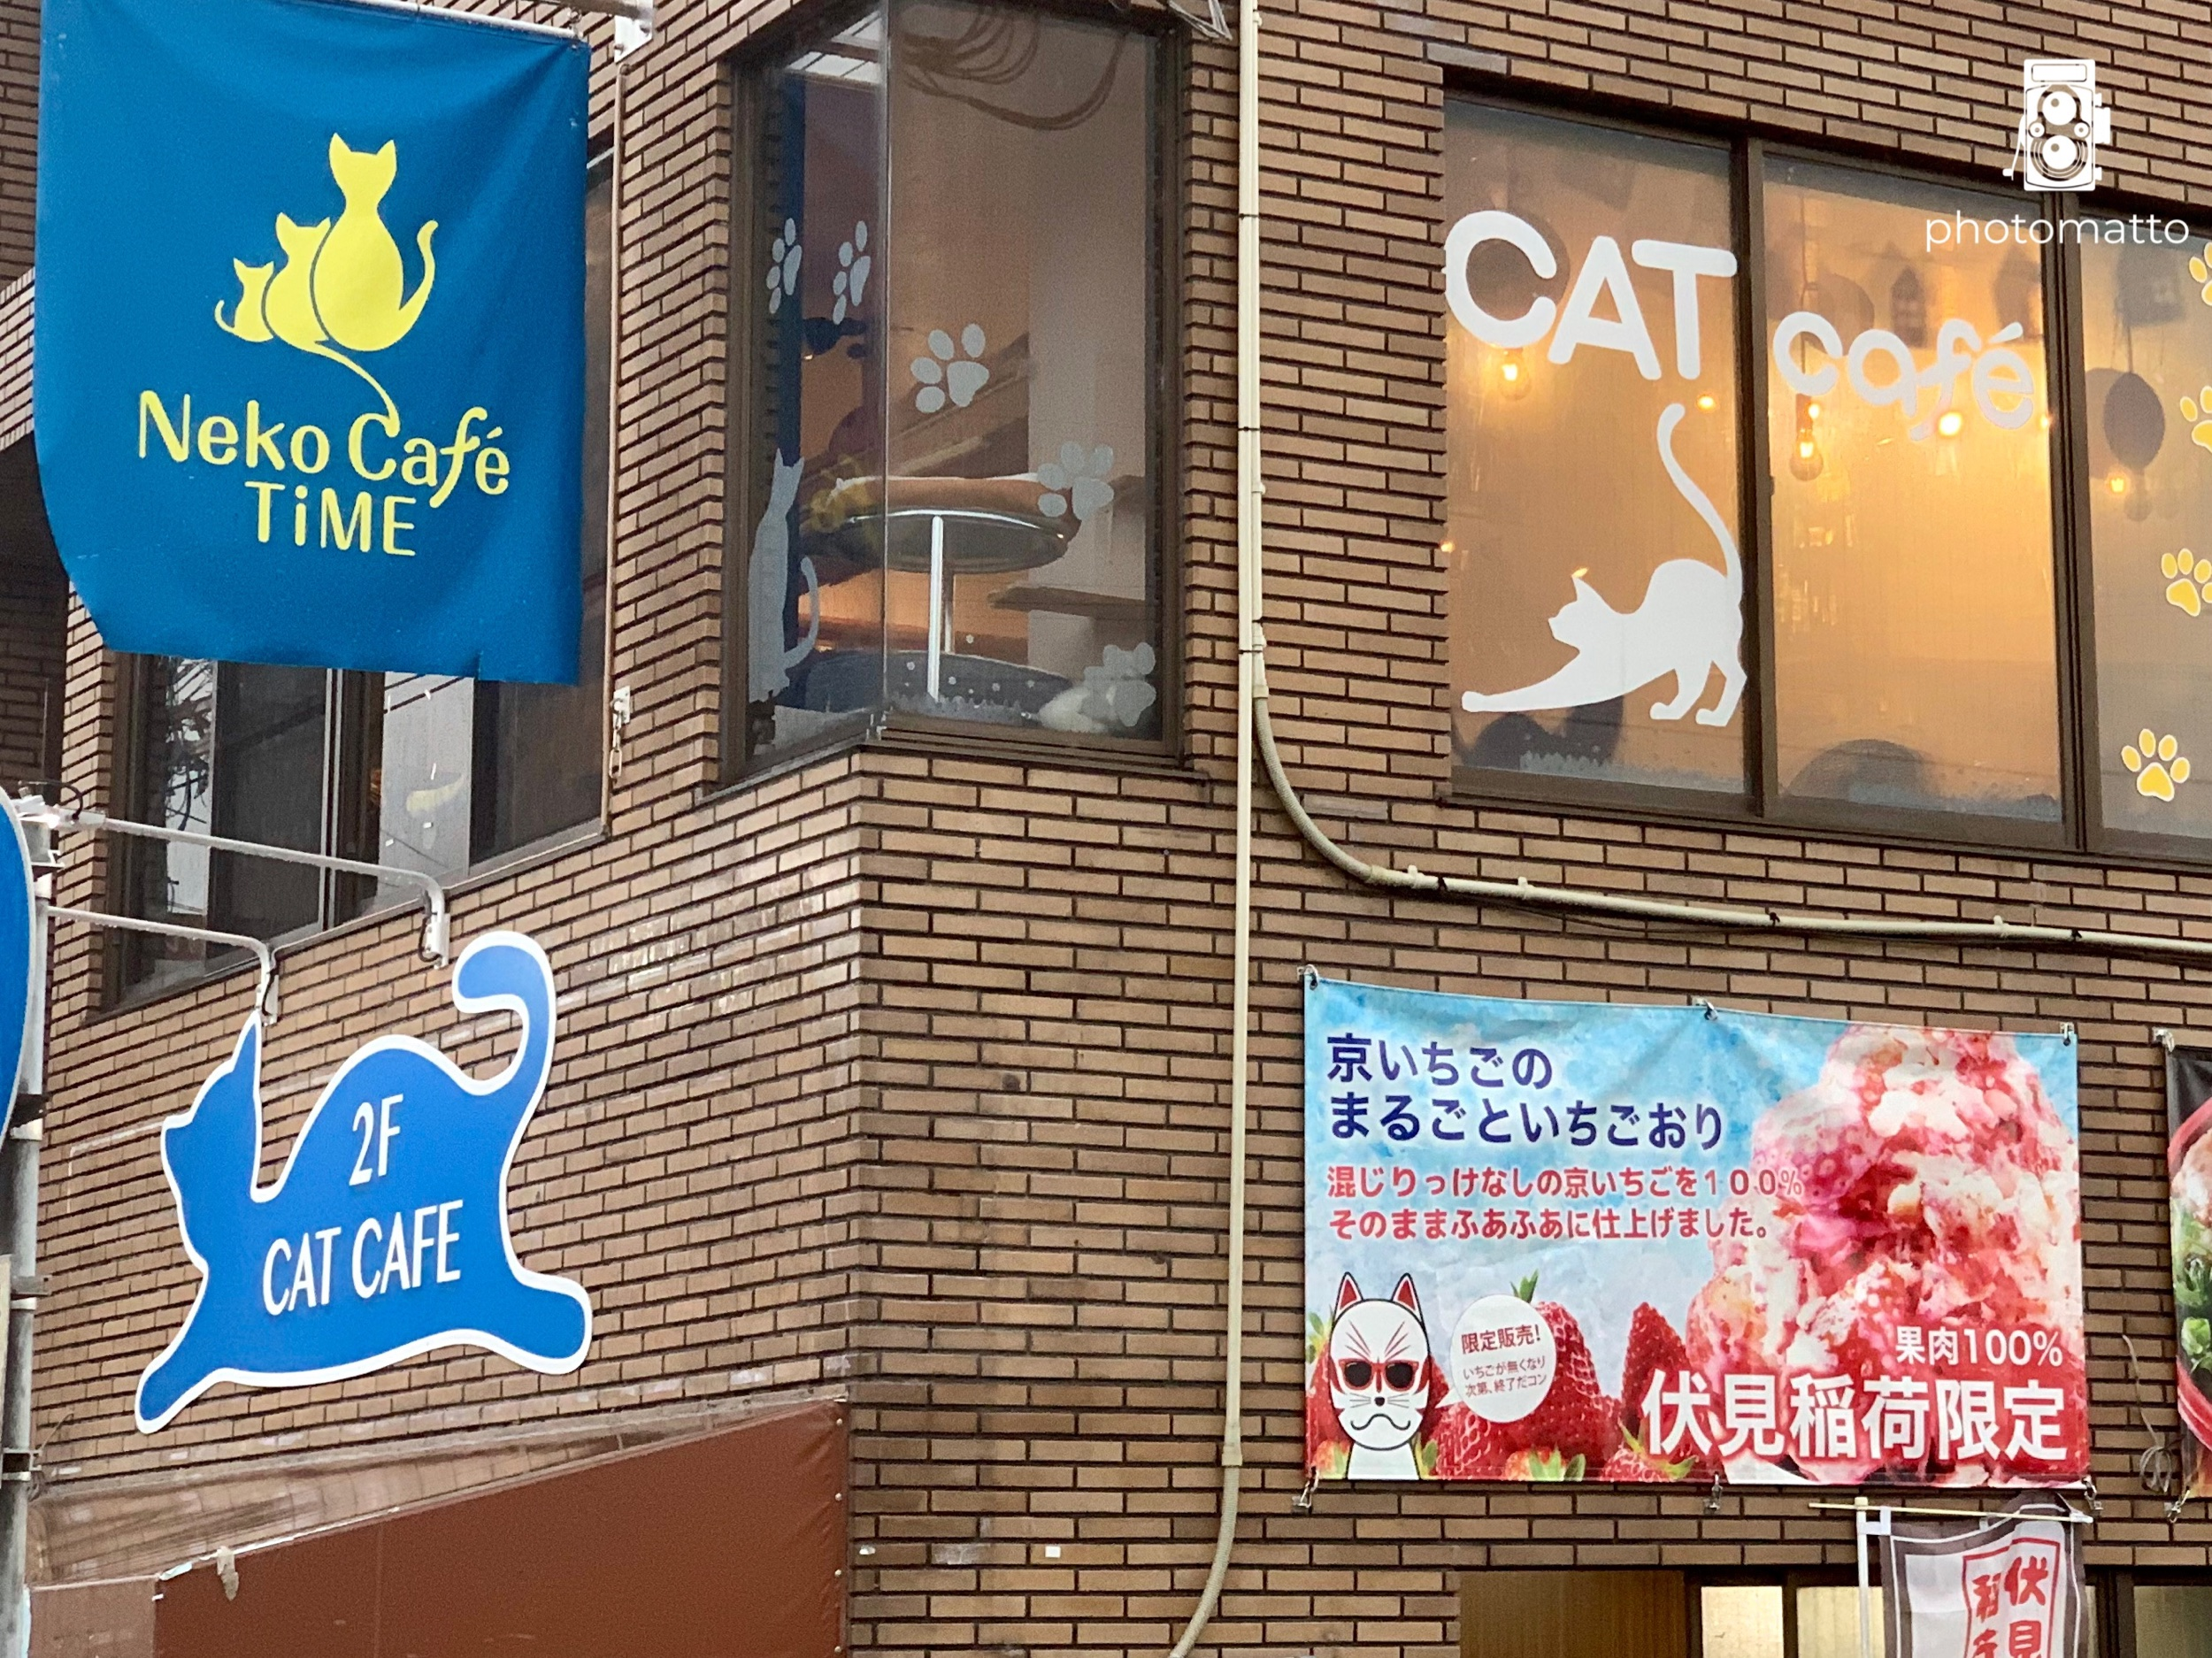 Another cat cafe!